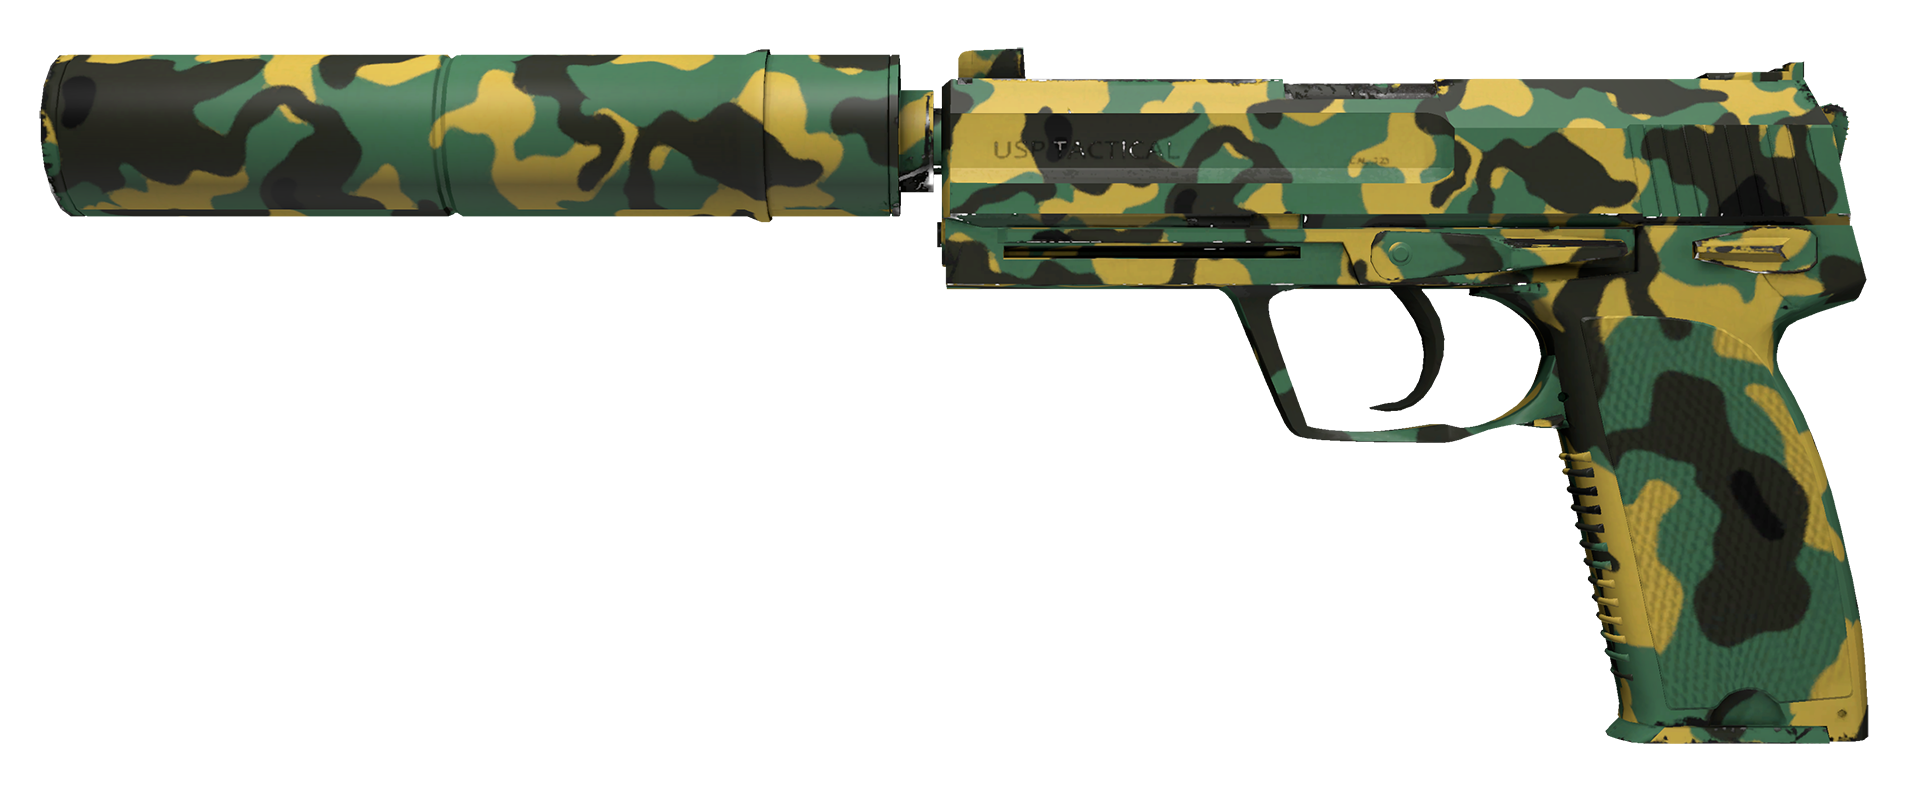 USP-S Overgrowth Large Rendering